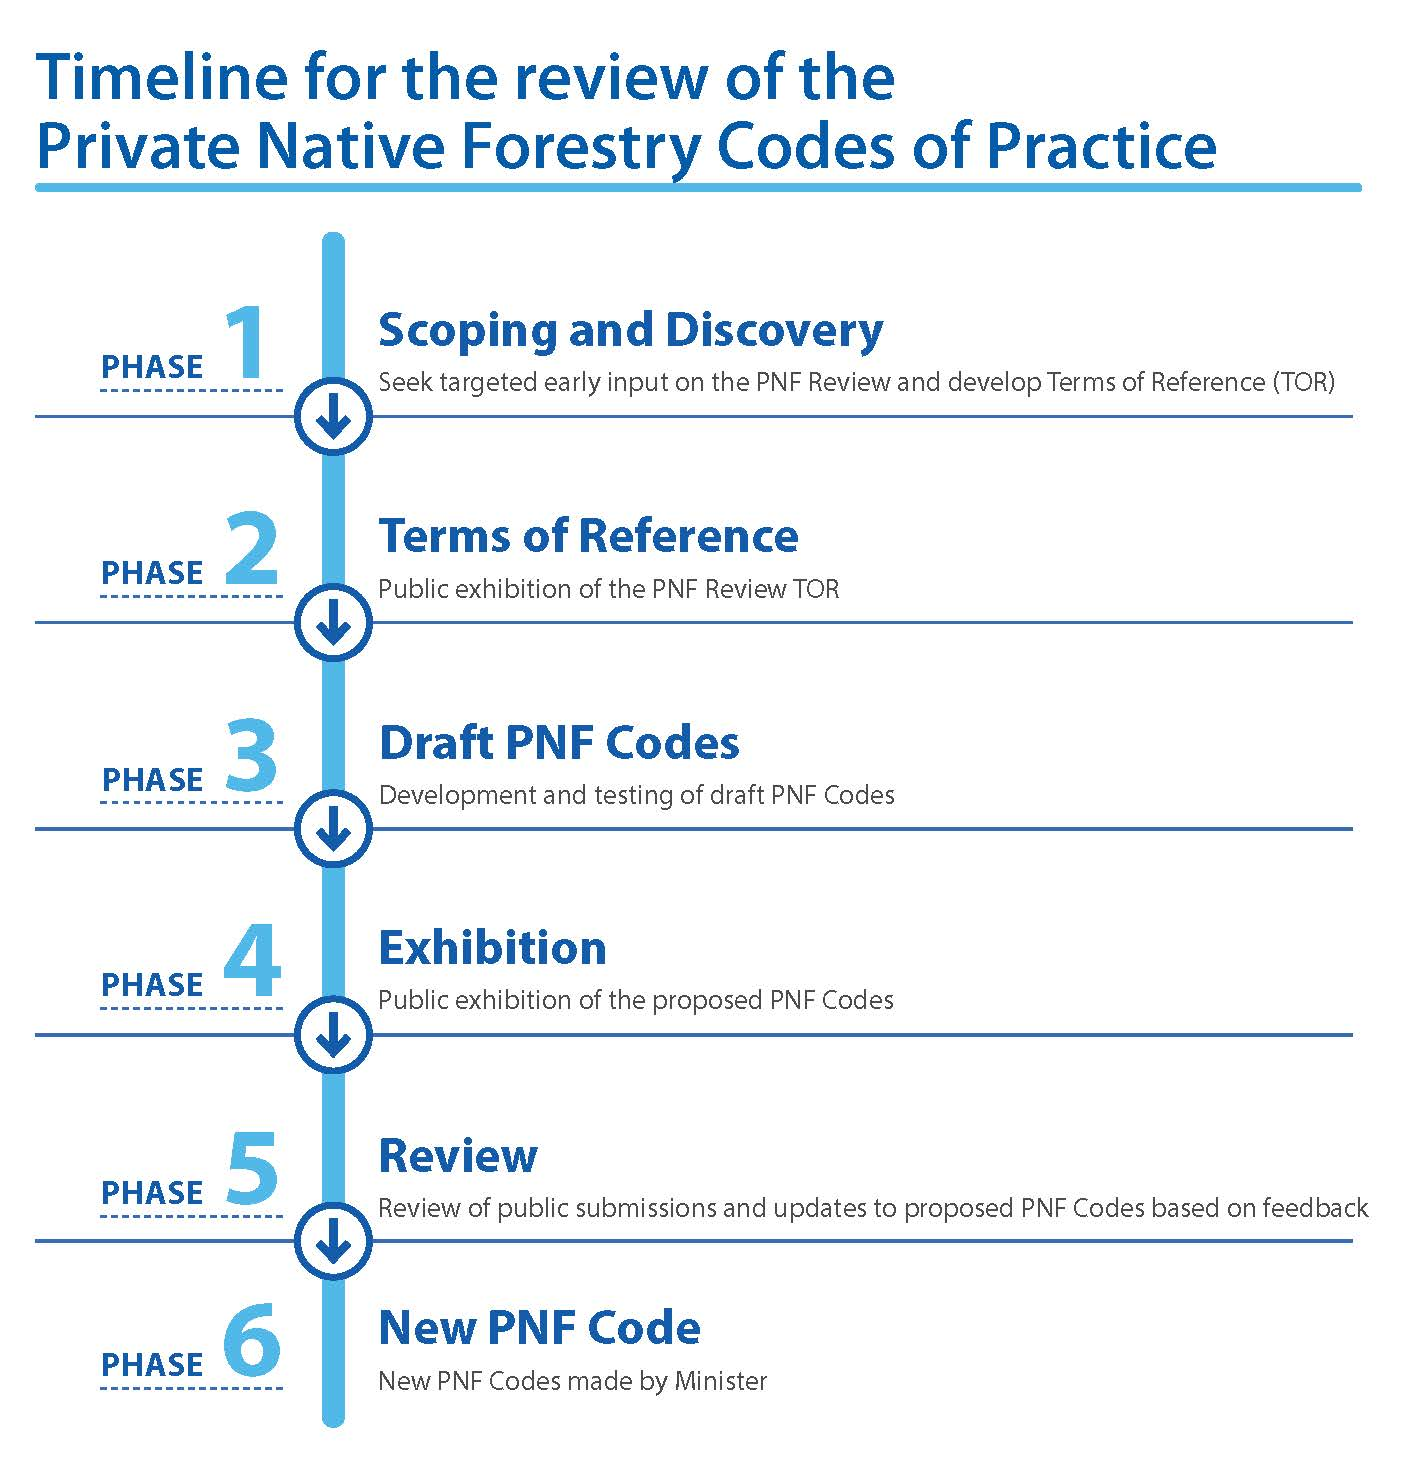 PNF Review - Timeline